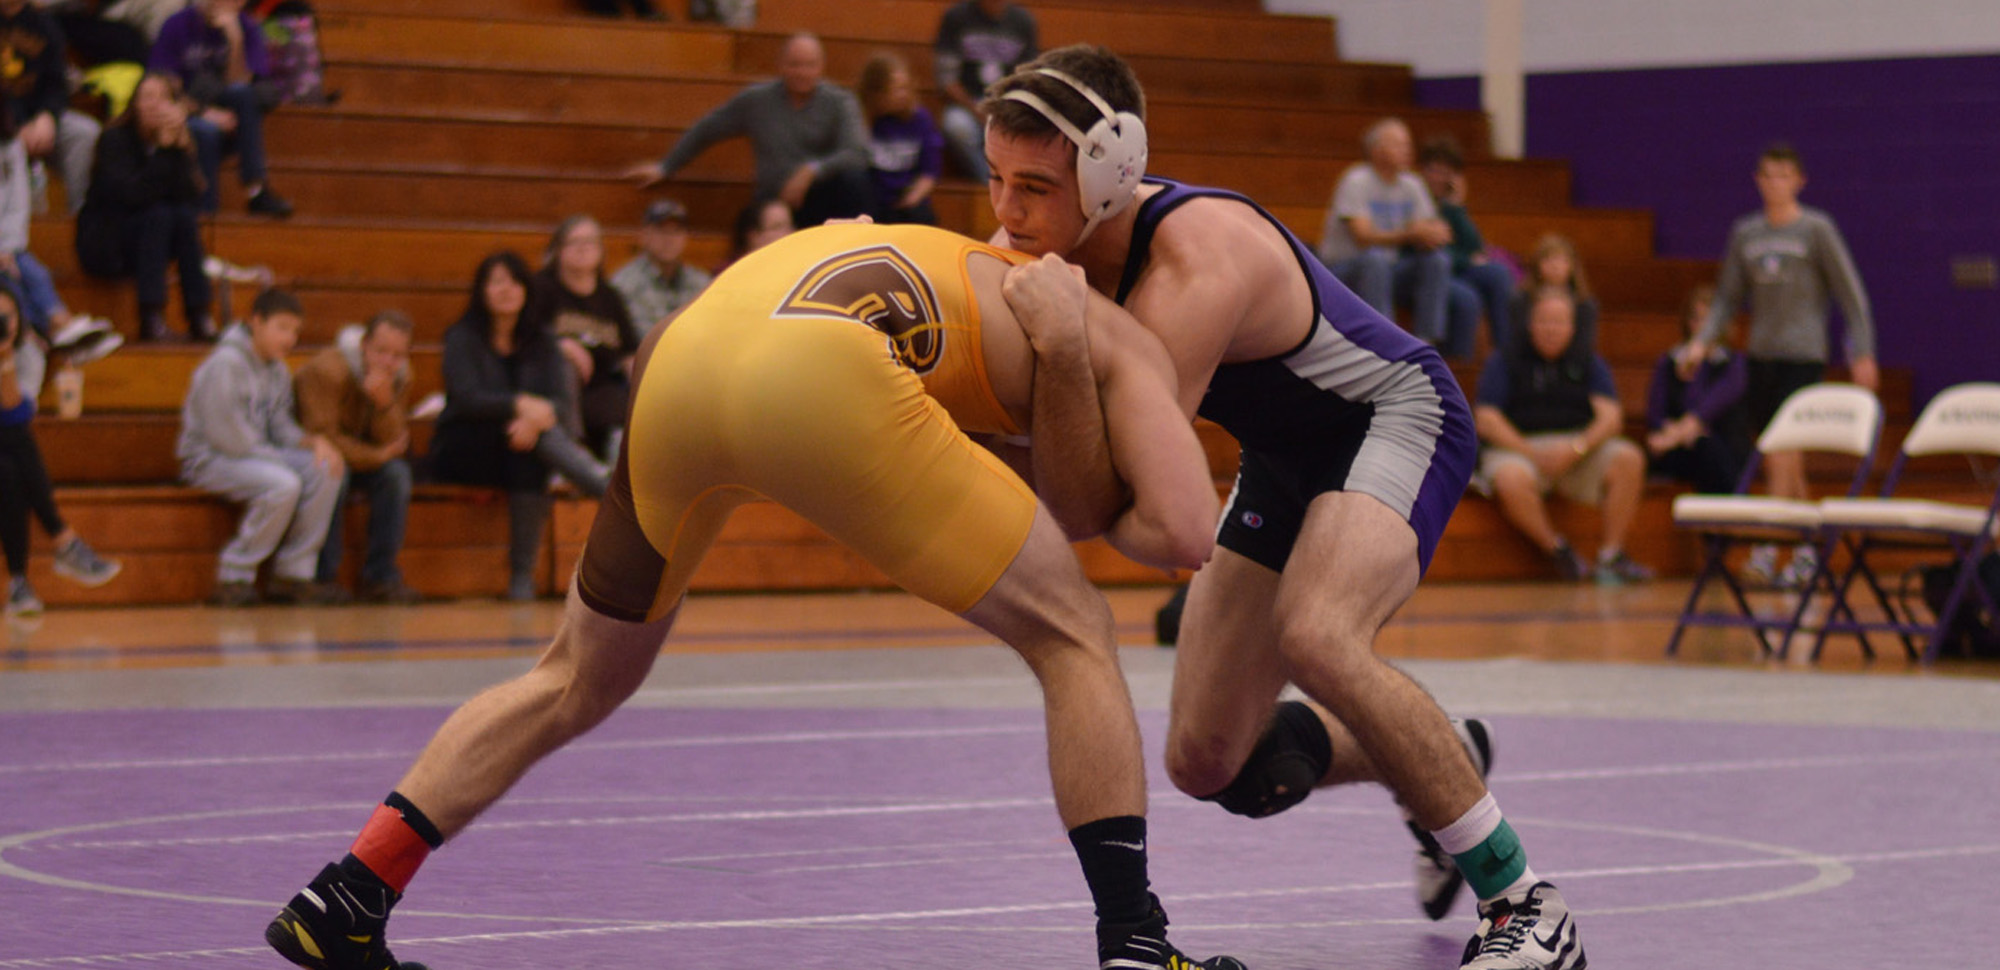 Evans Reaches Semifinals To Lead Wrestling At NCAA Mideast Regional